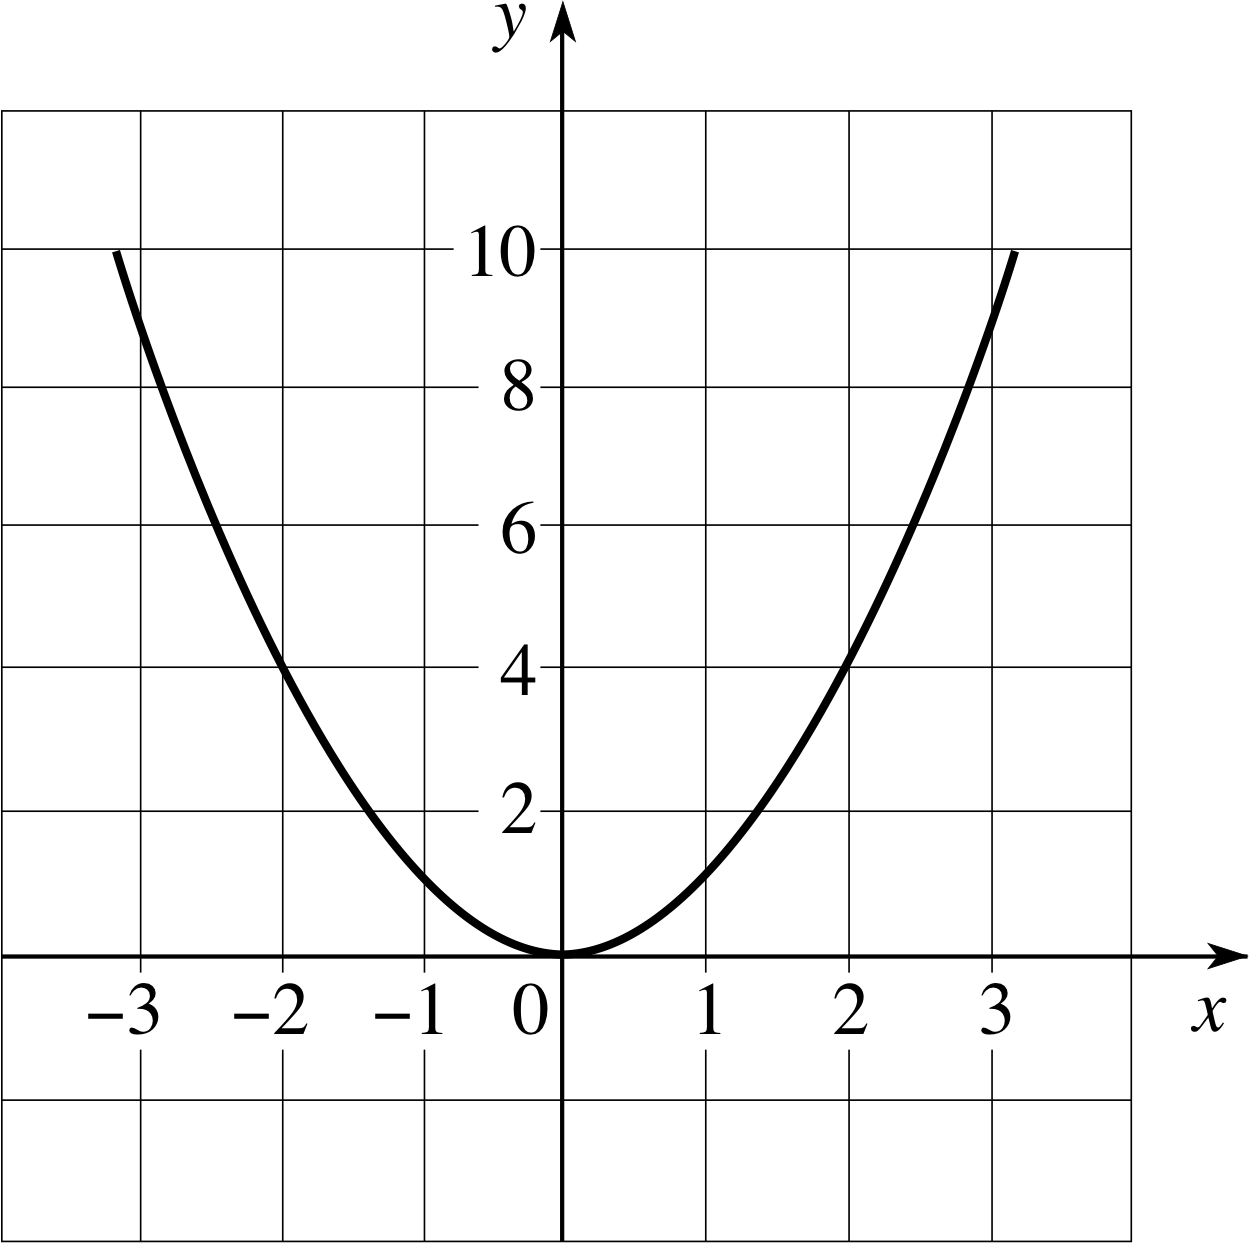 pplato flap math 1 3 functions and graphs